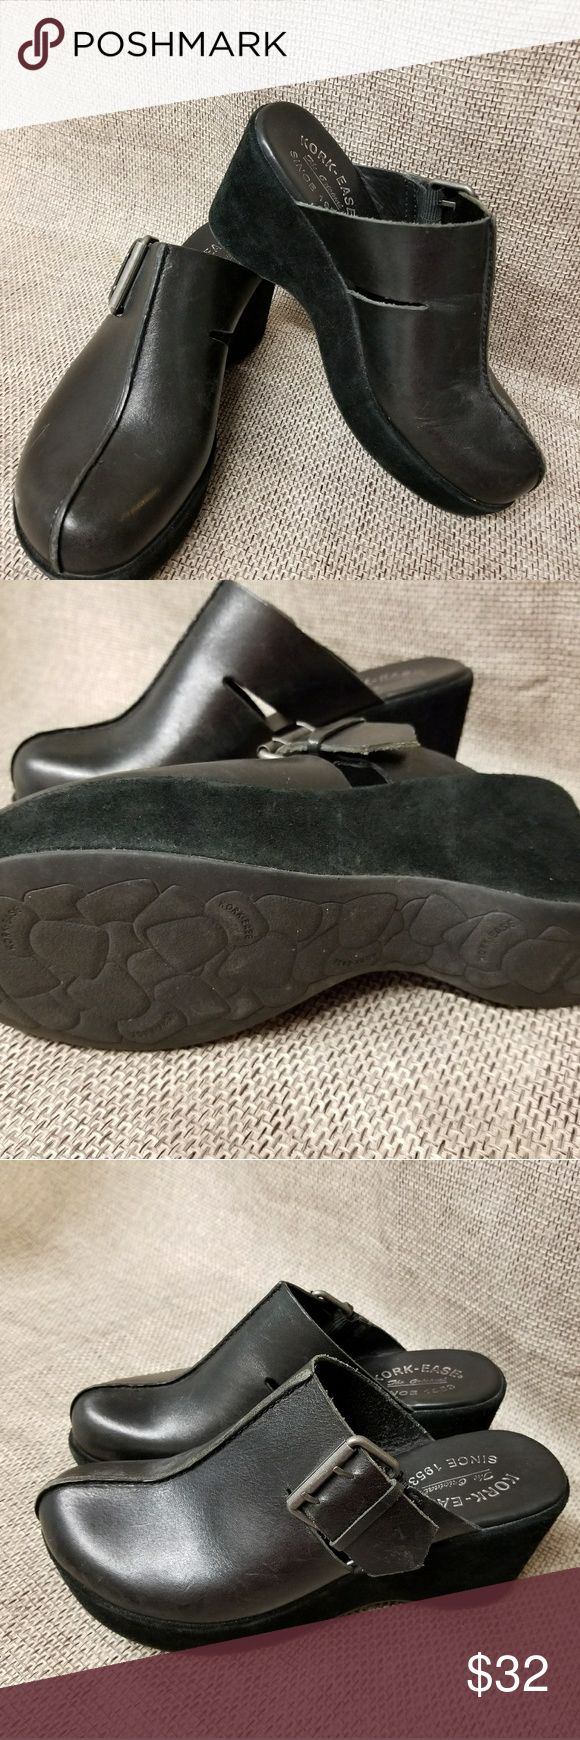 Kork-Ease black Clogs Wedge shoes ladies 7 38 Excellent pre owned condition. Non smoking home. #24 Kork-ease Shoes Mules & Clogs